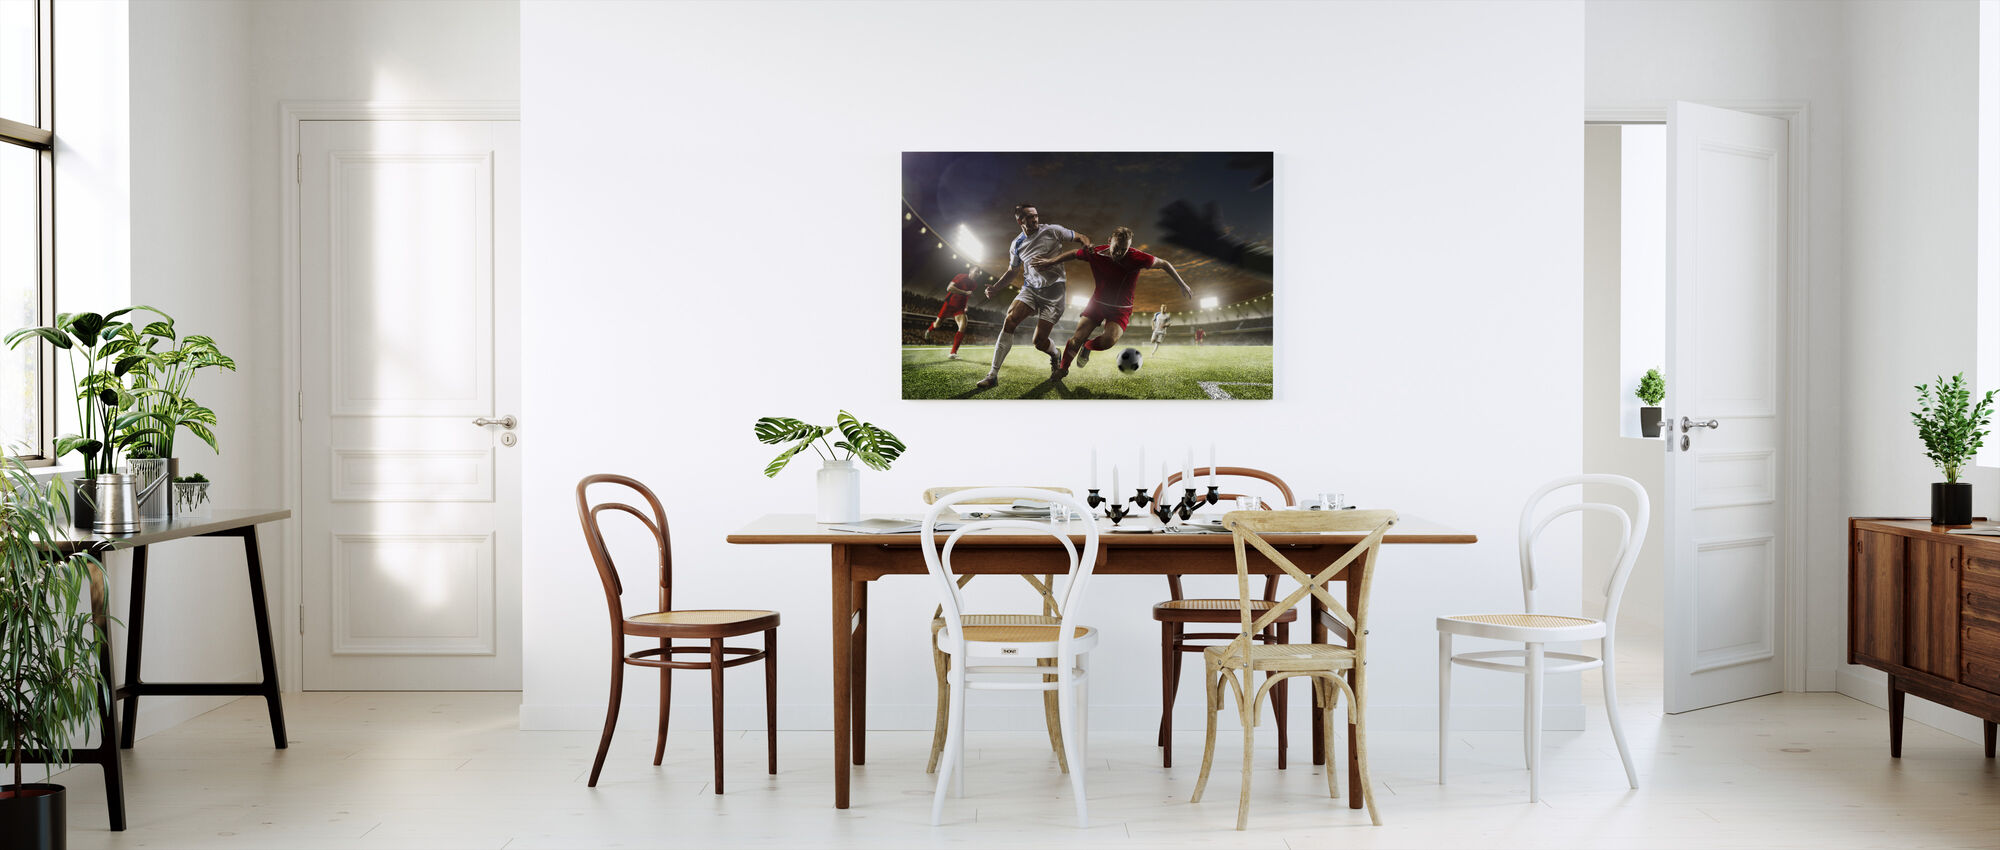 Playing Soccer - Canvas print - Kitchen